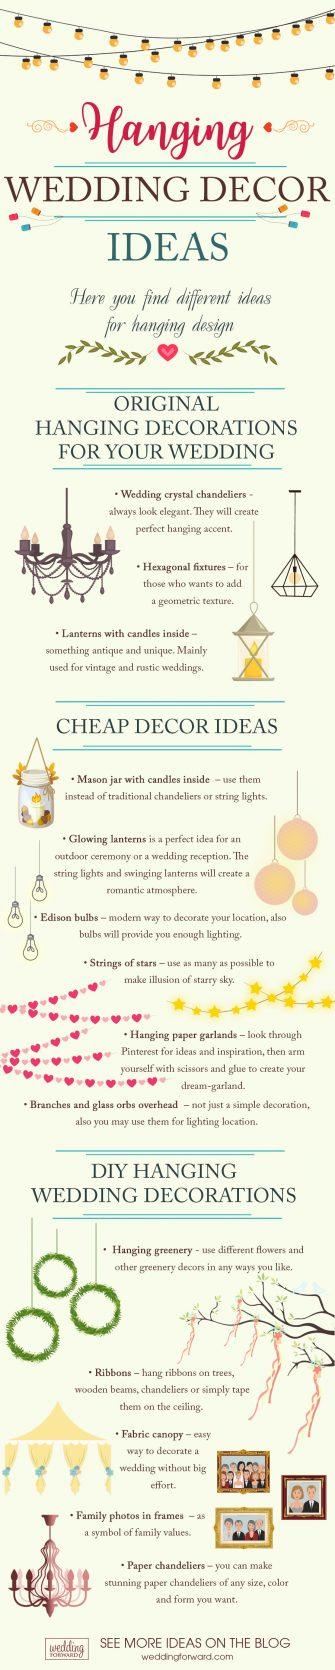 wedding decor ideas hanging wedding decor ieas